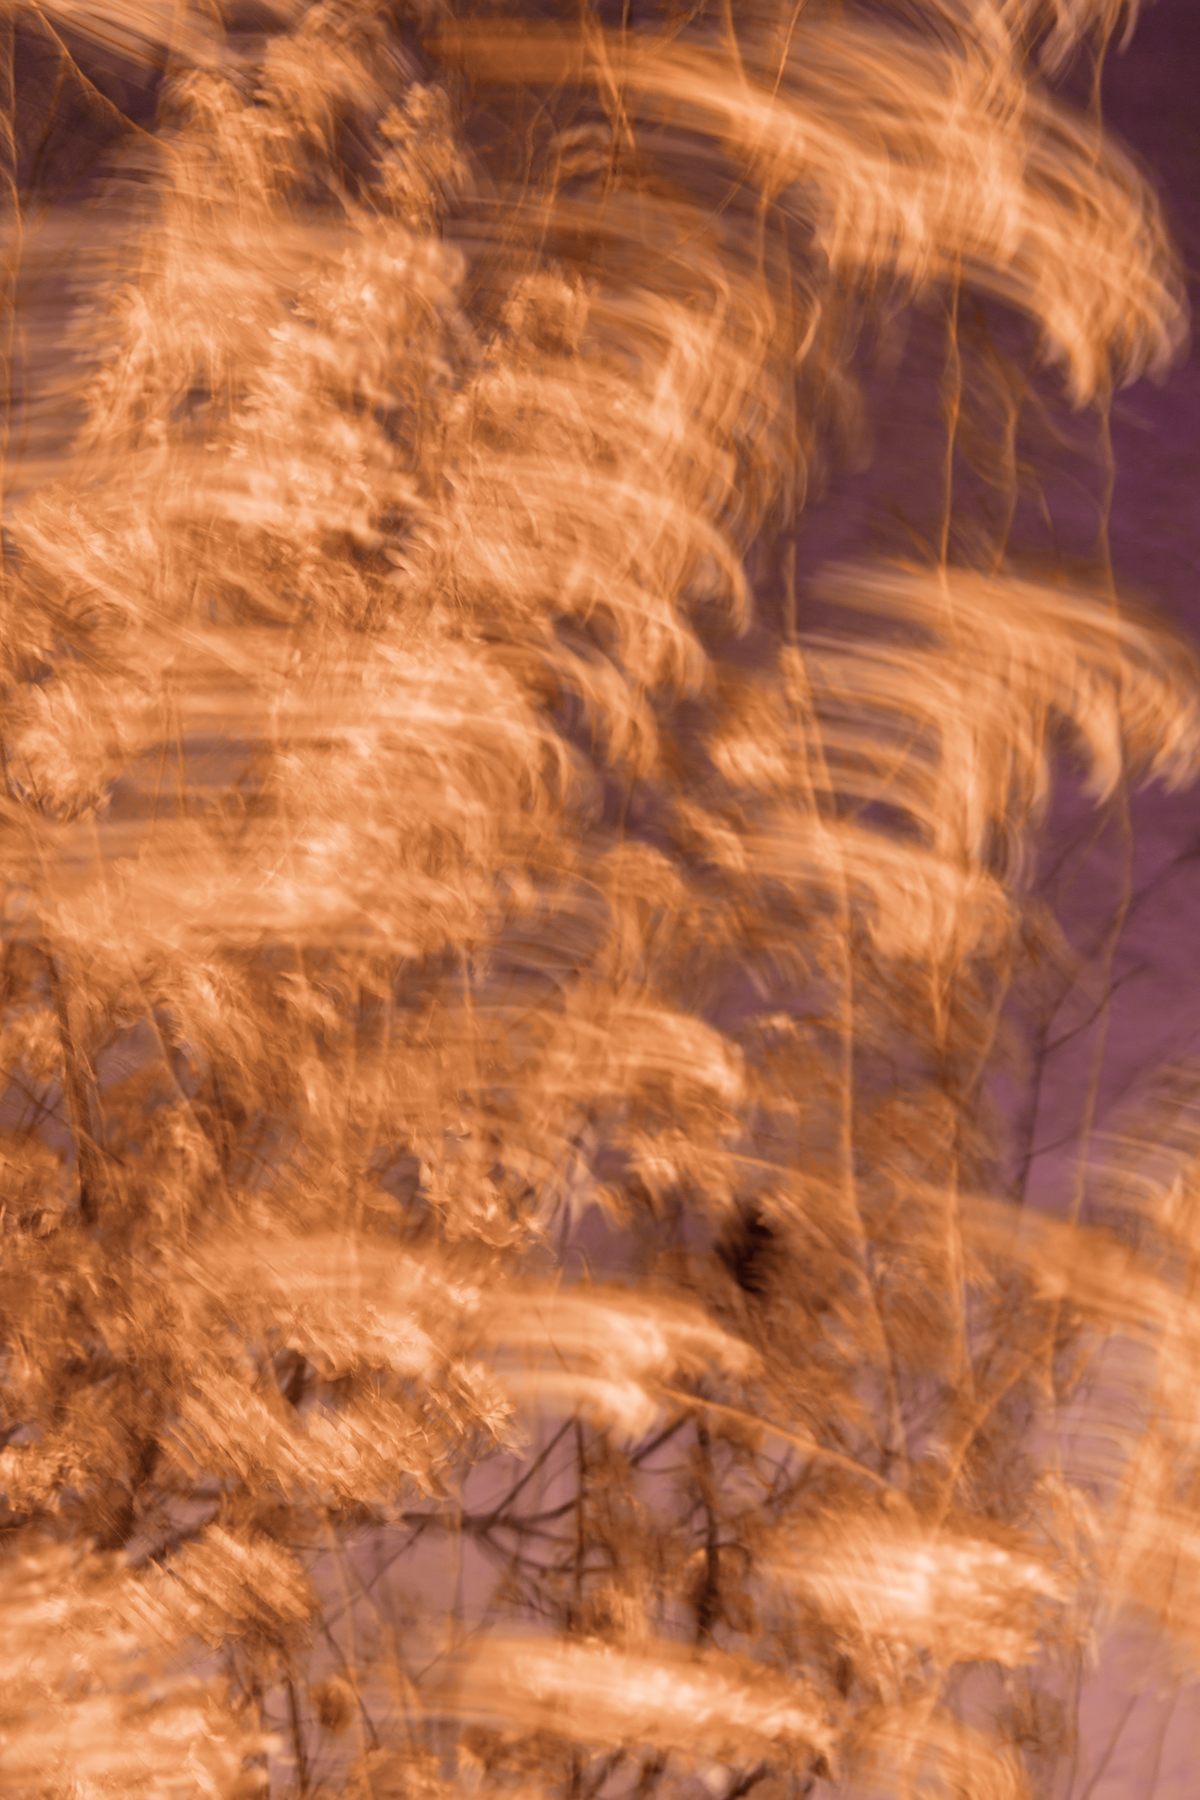 Cherry blossom wind streaks photo